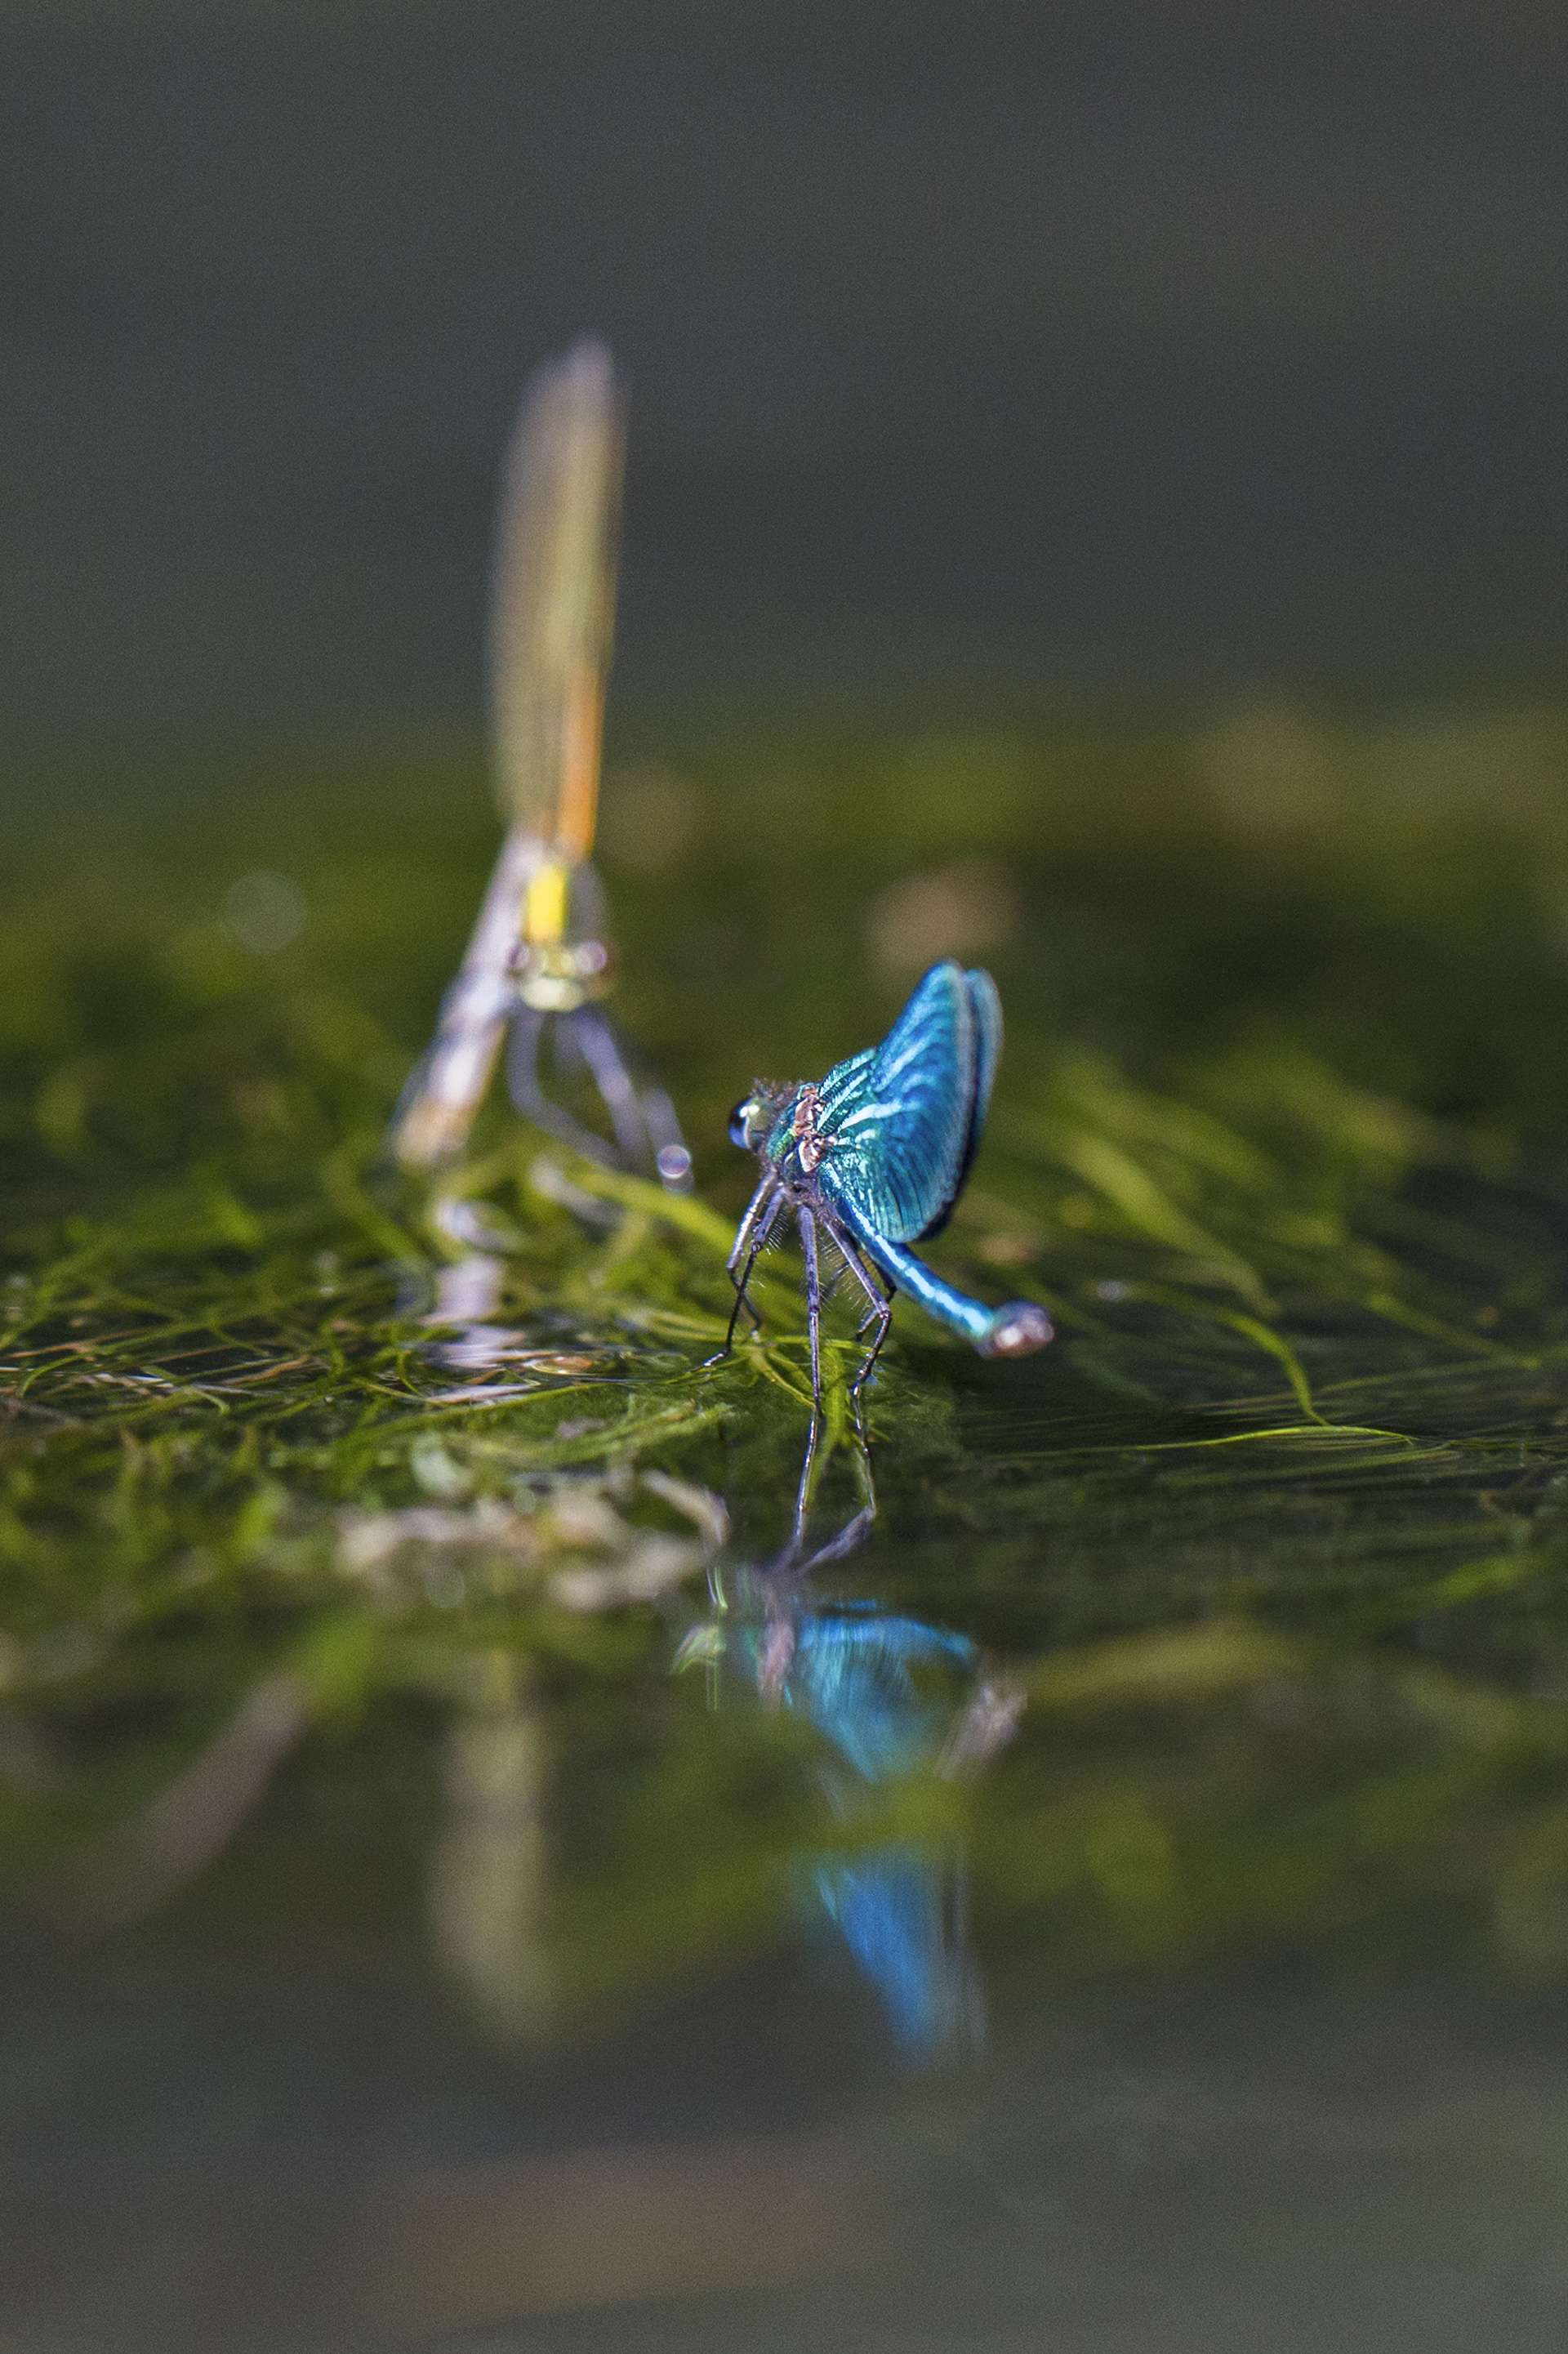 Gilles Martins photograph of a banded demoiselle (calopteryx splendens), France